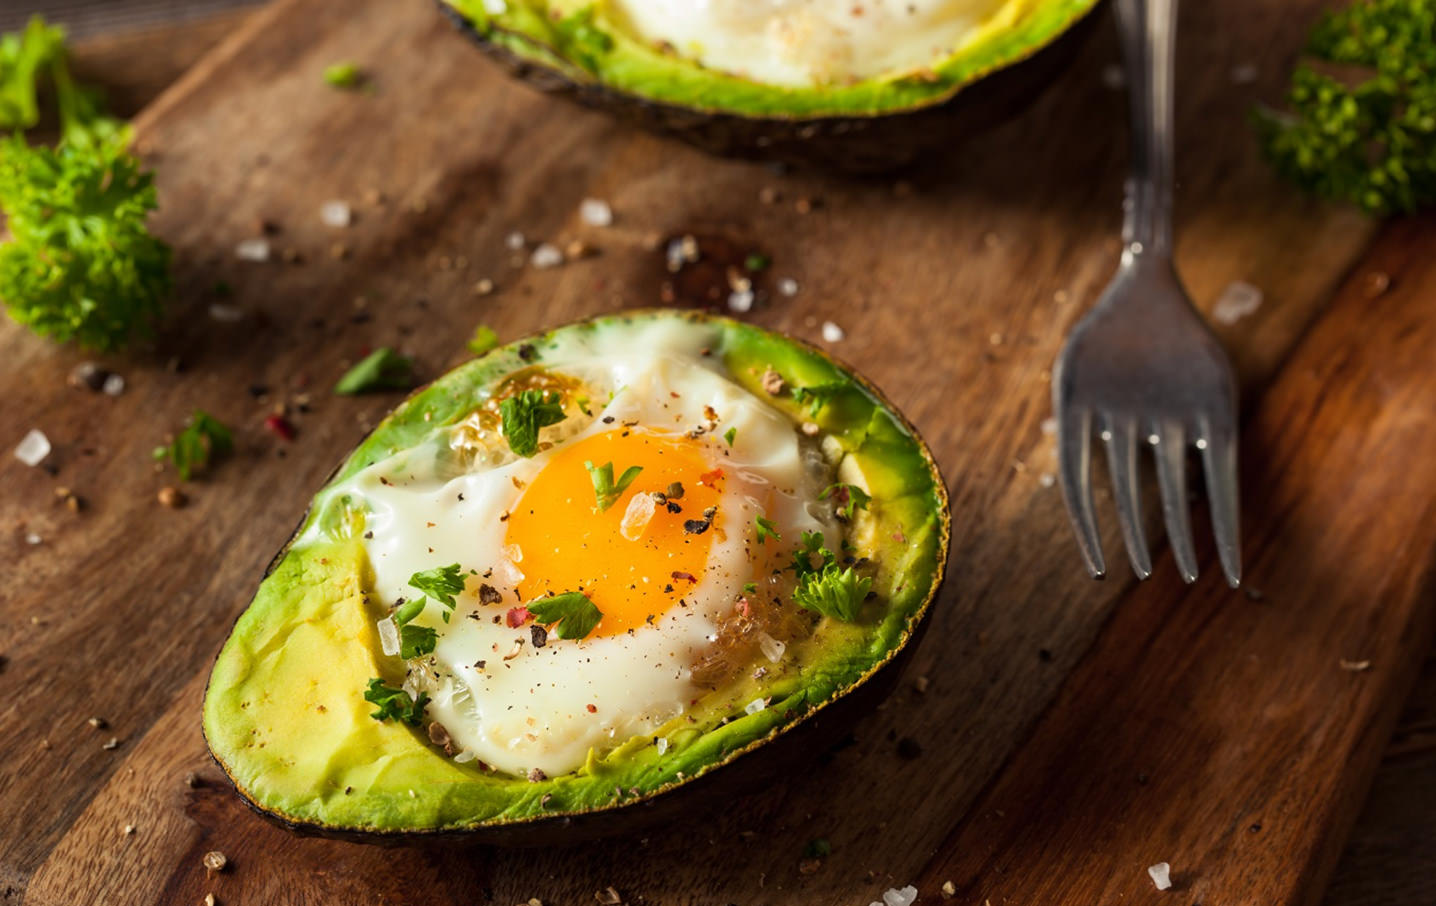 Baked Avocado and egg recipe